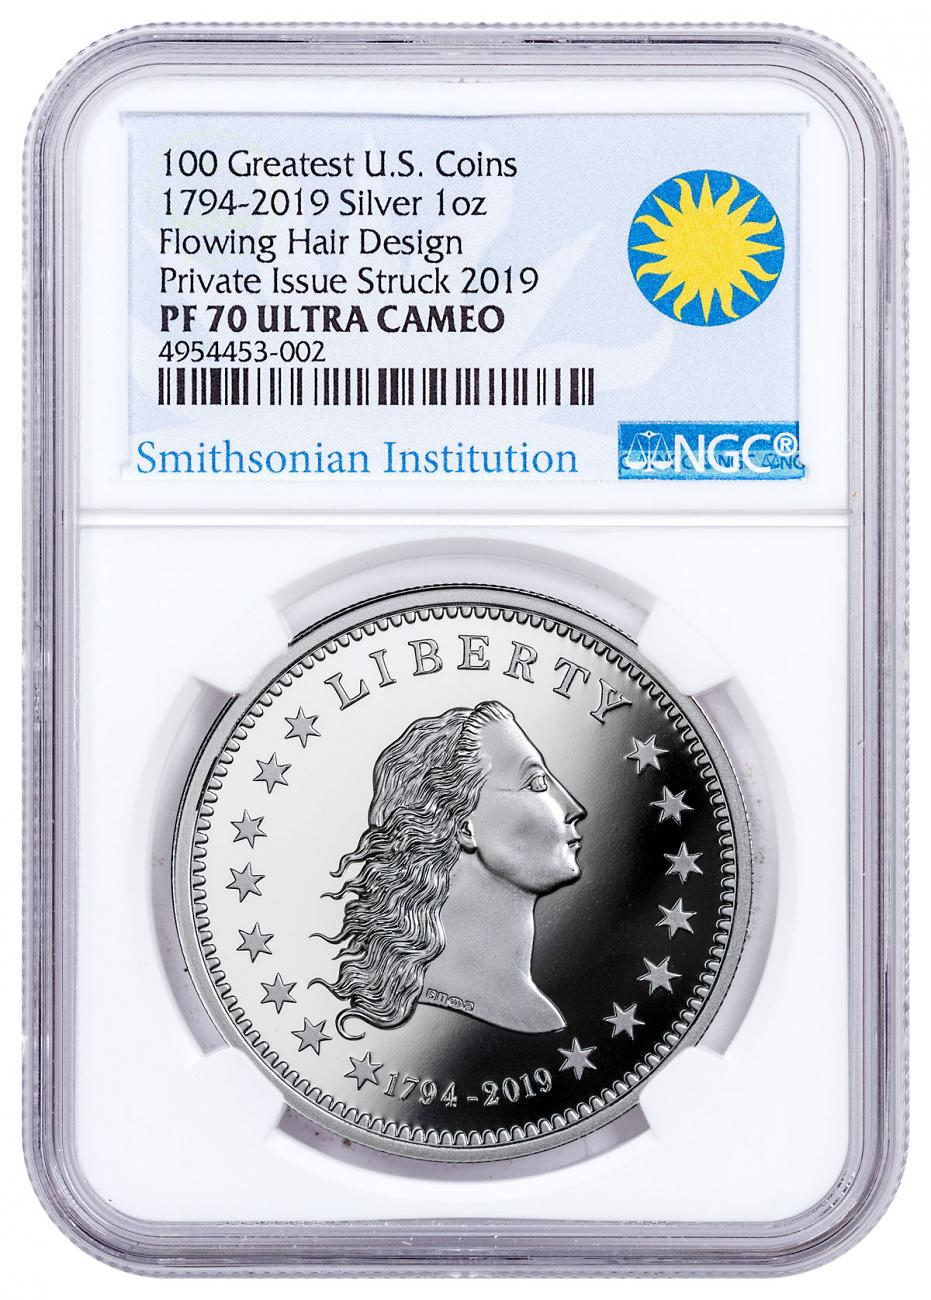 1794-2019 Smithsonian - America's First Silver Dollar 1 oz Silver Proof Medal NGC PF70 UC